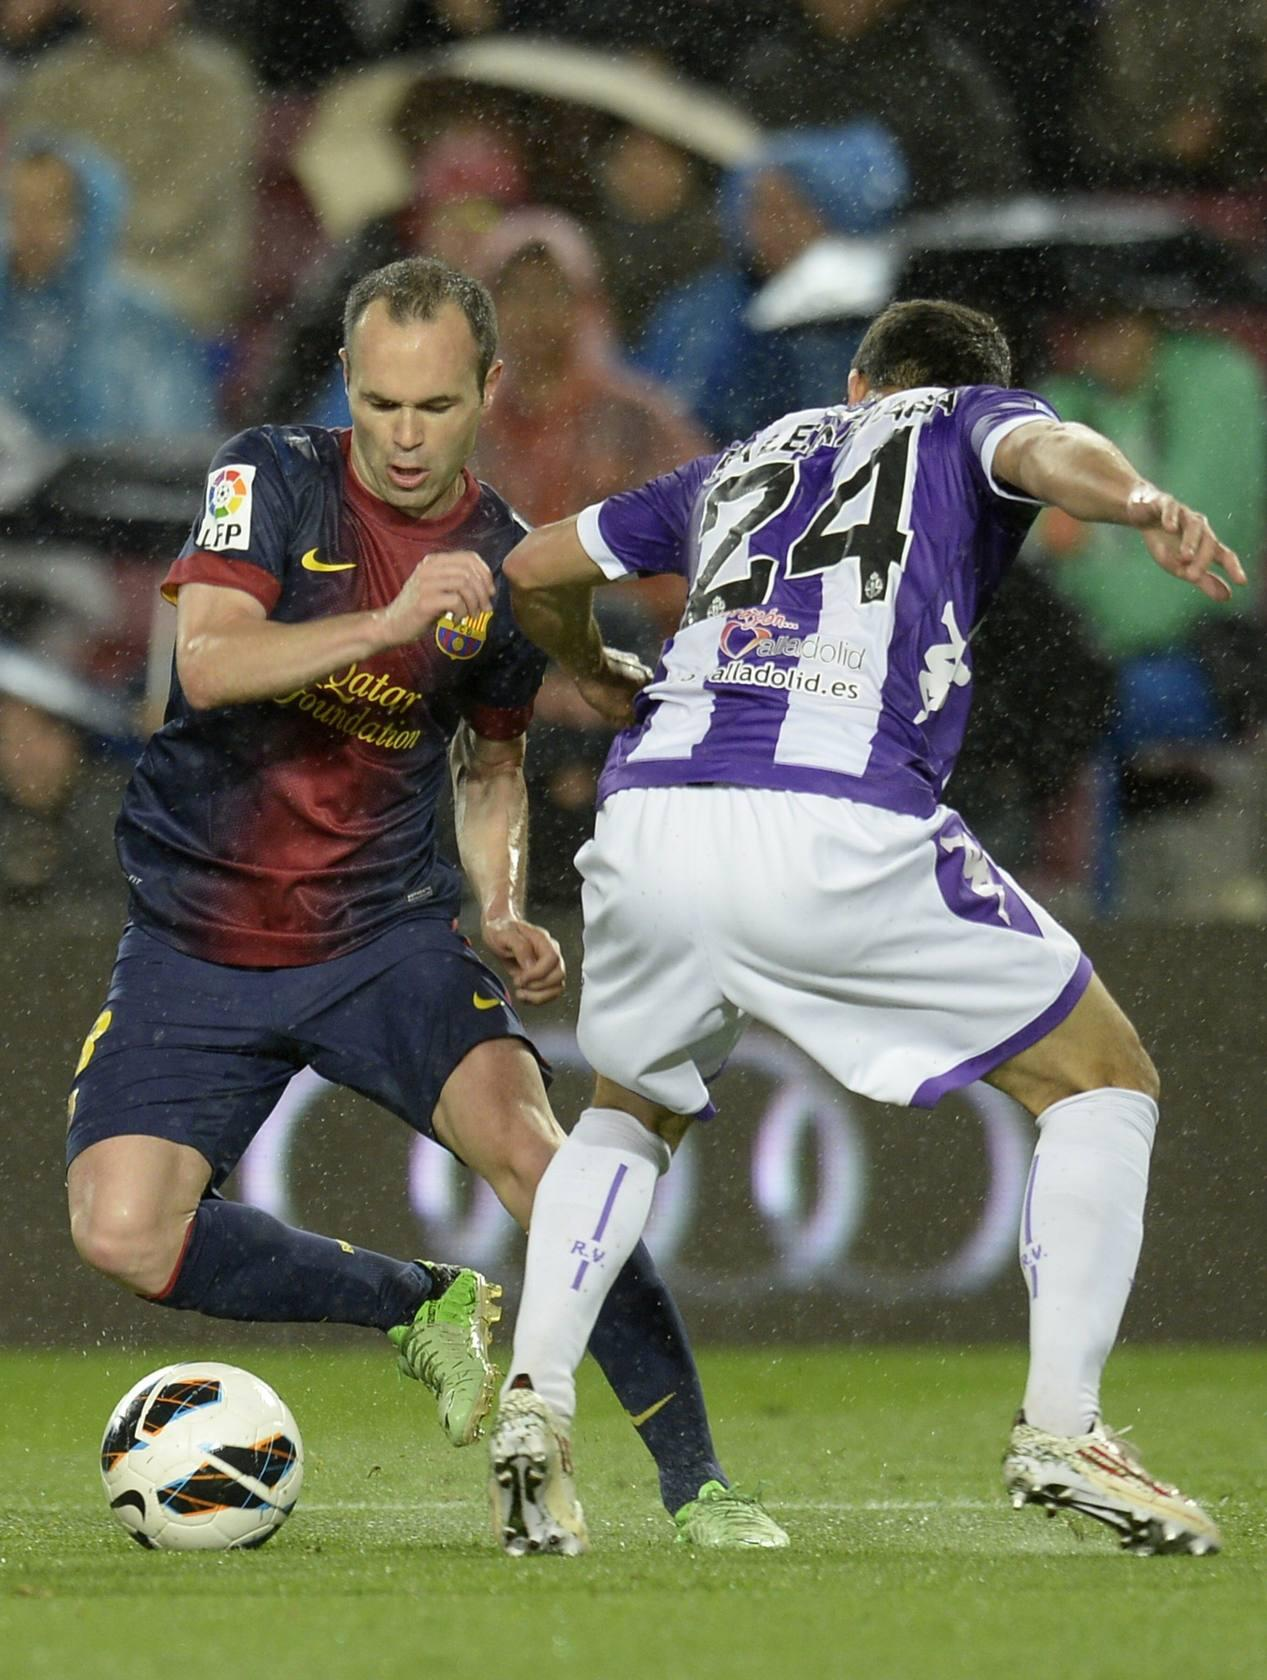 F. C. Barcelona 2 - 1 Real Valladolid